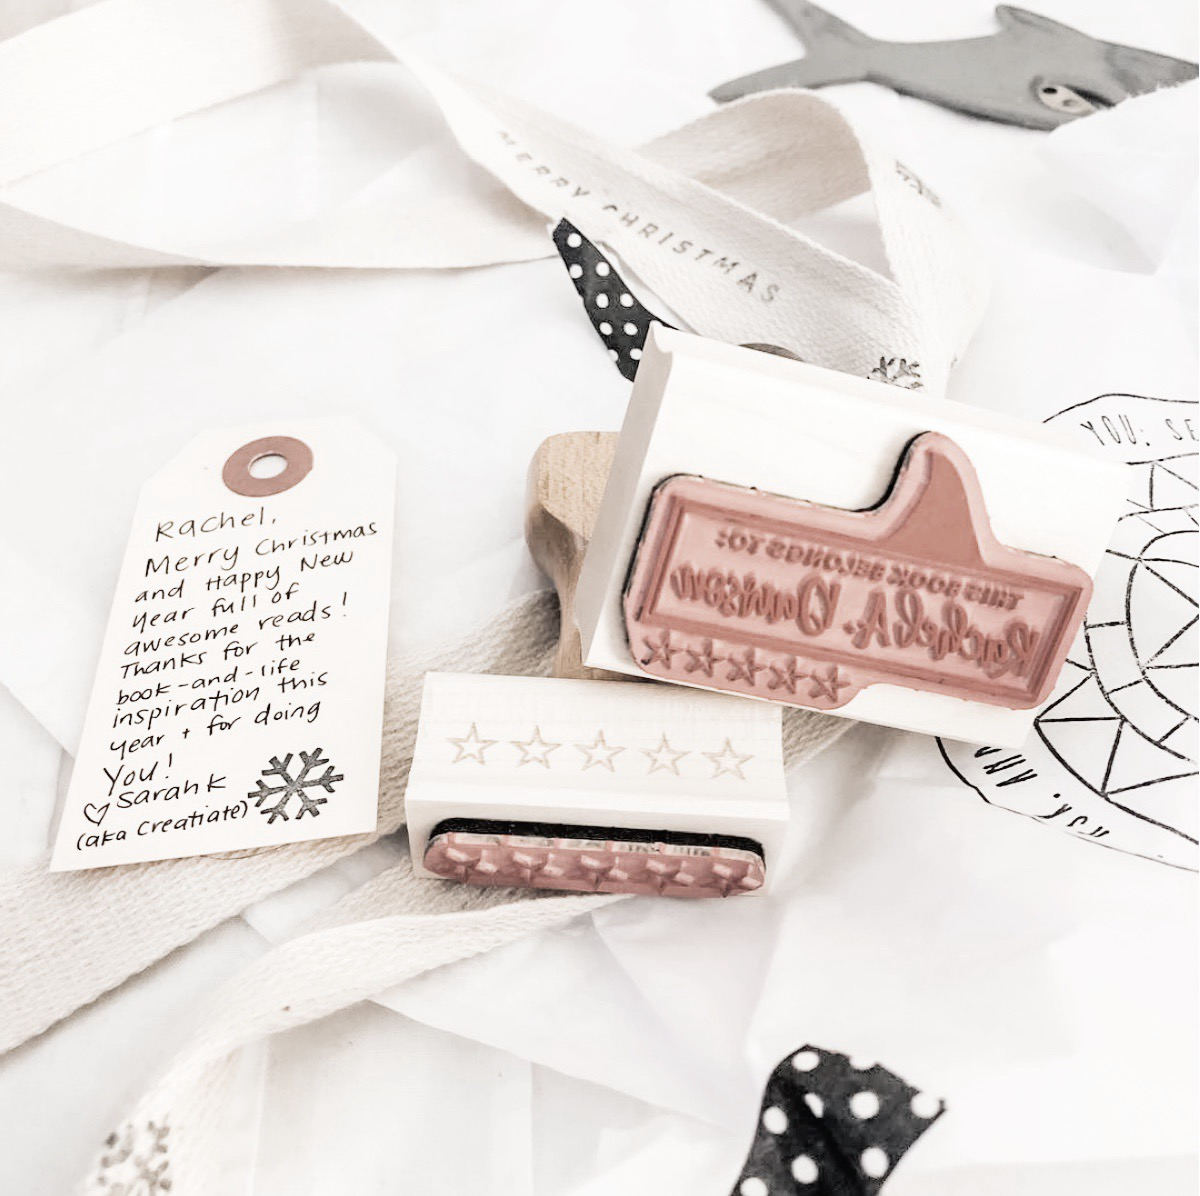 """""""OH MY GOSH I have to rave about  @creatiate  and her incredible talent and amazing heart!!! 😍 I got… the coolest custom book stamp and a five star stamp too and  I'm blown away. """"  ~ @ alltheradreads"""